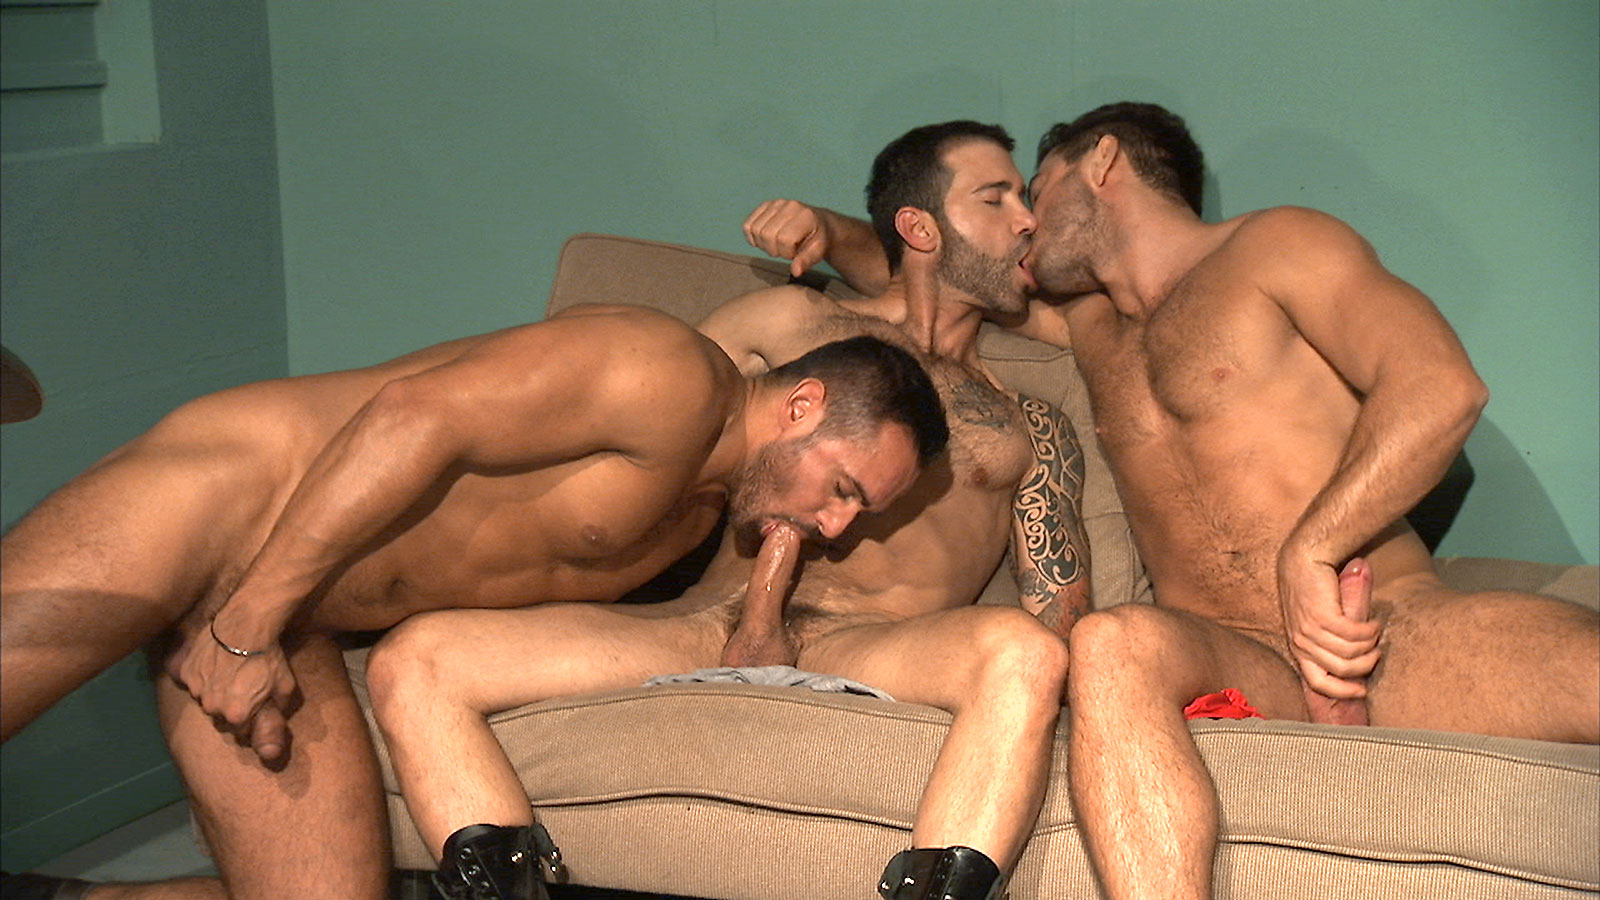 Gay group dick sucking outdoors stories